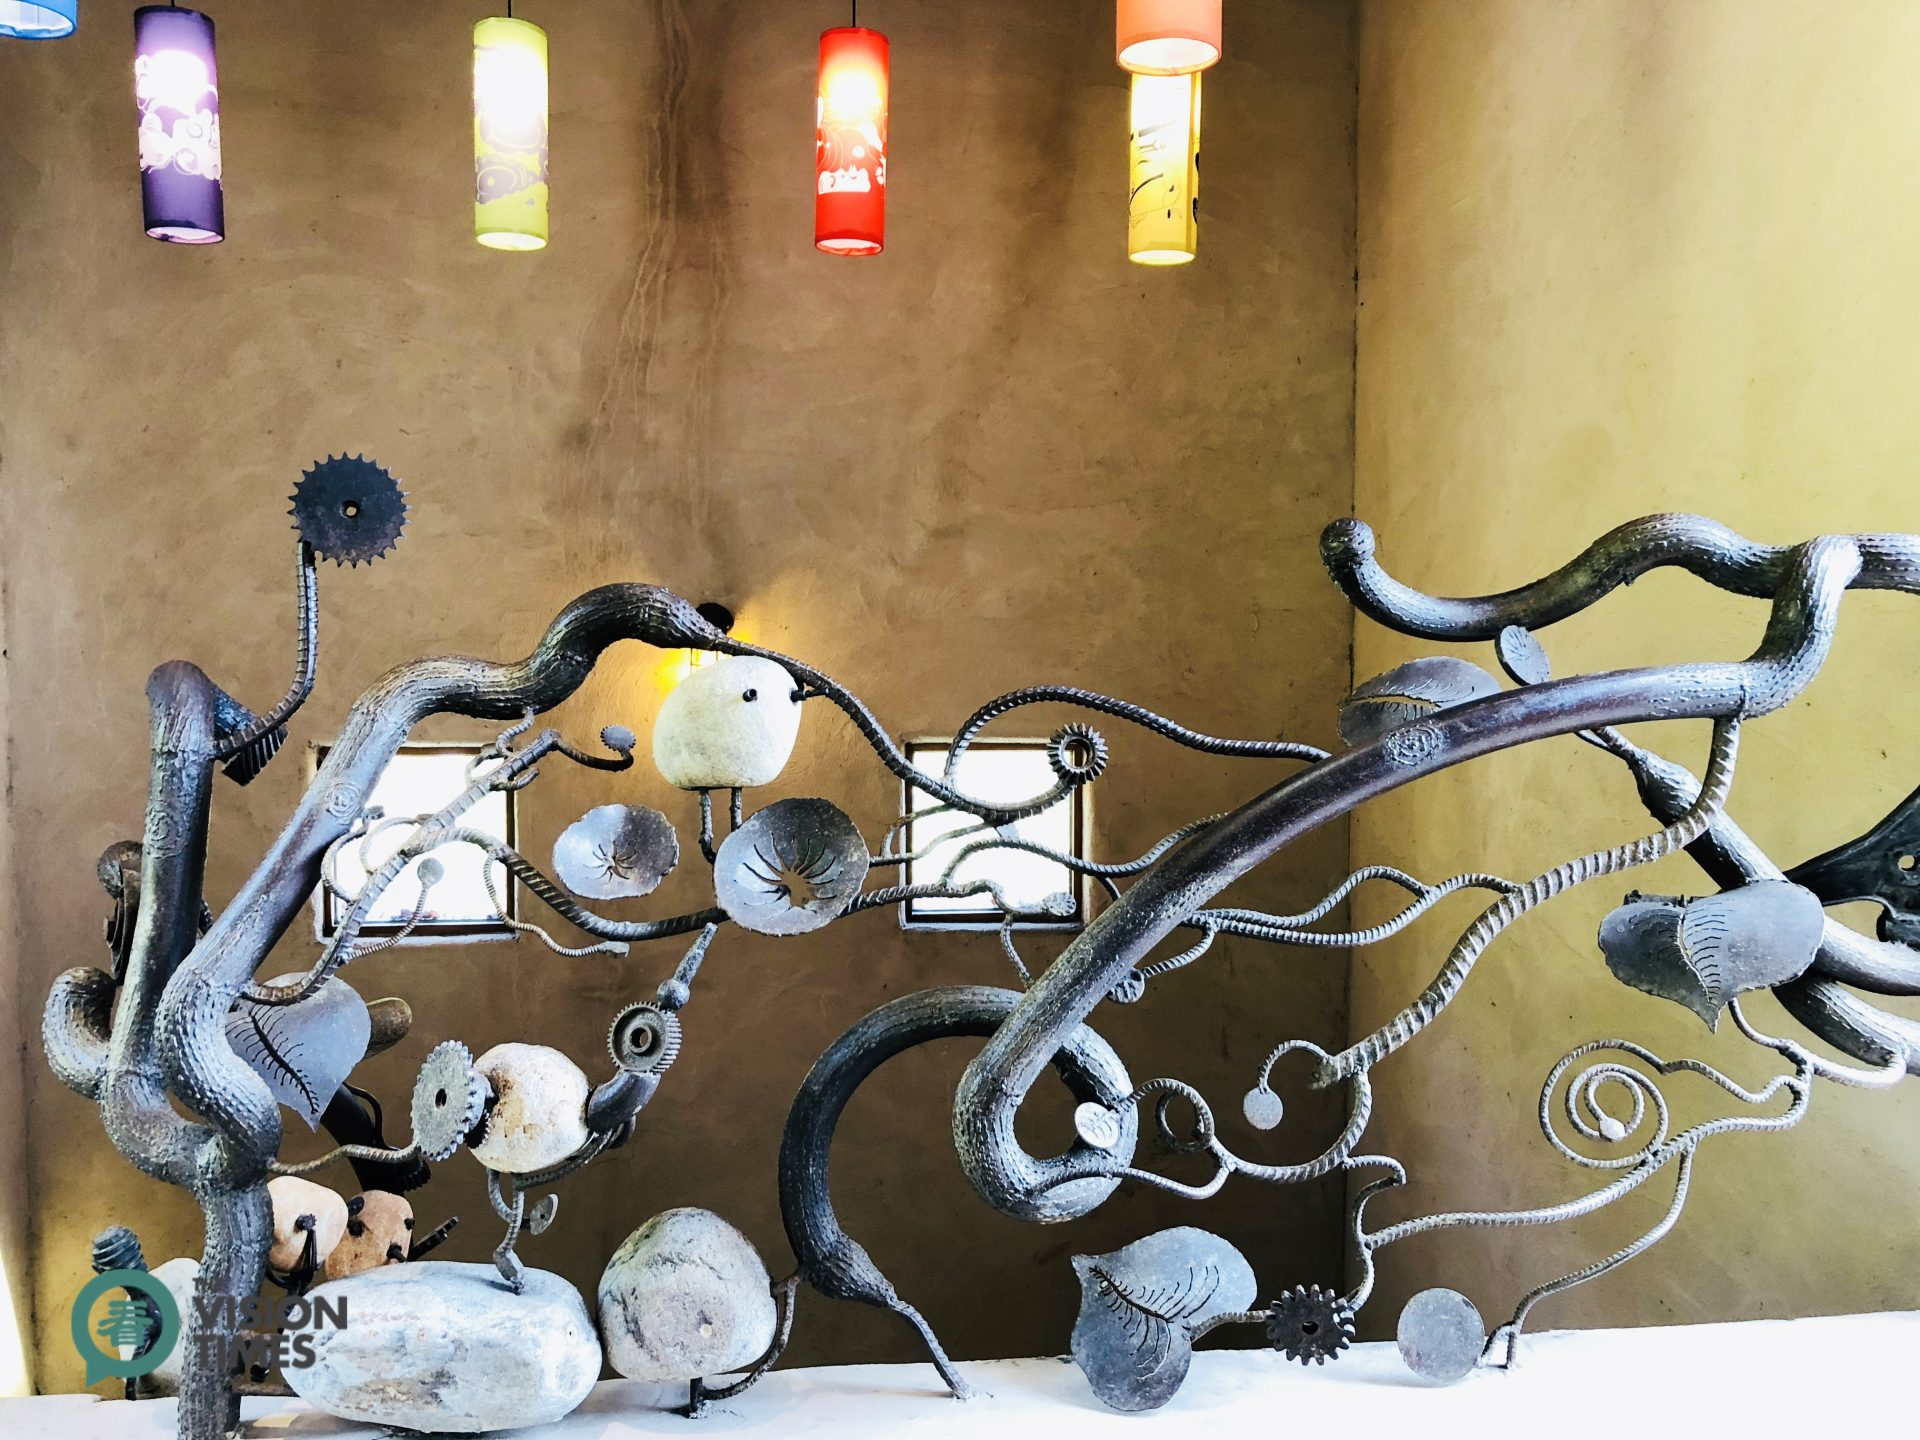 There are over 100 different iron sculptures used to decorate its fencing and railing. (Image: Julia Fu / Vision Times)